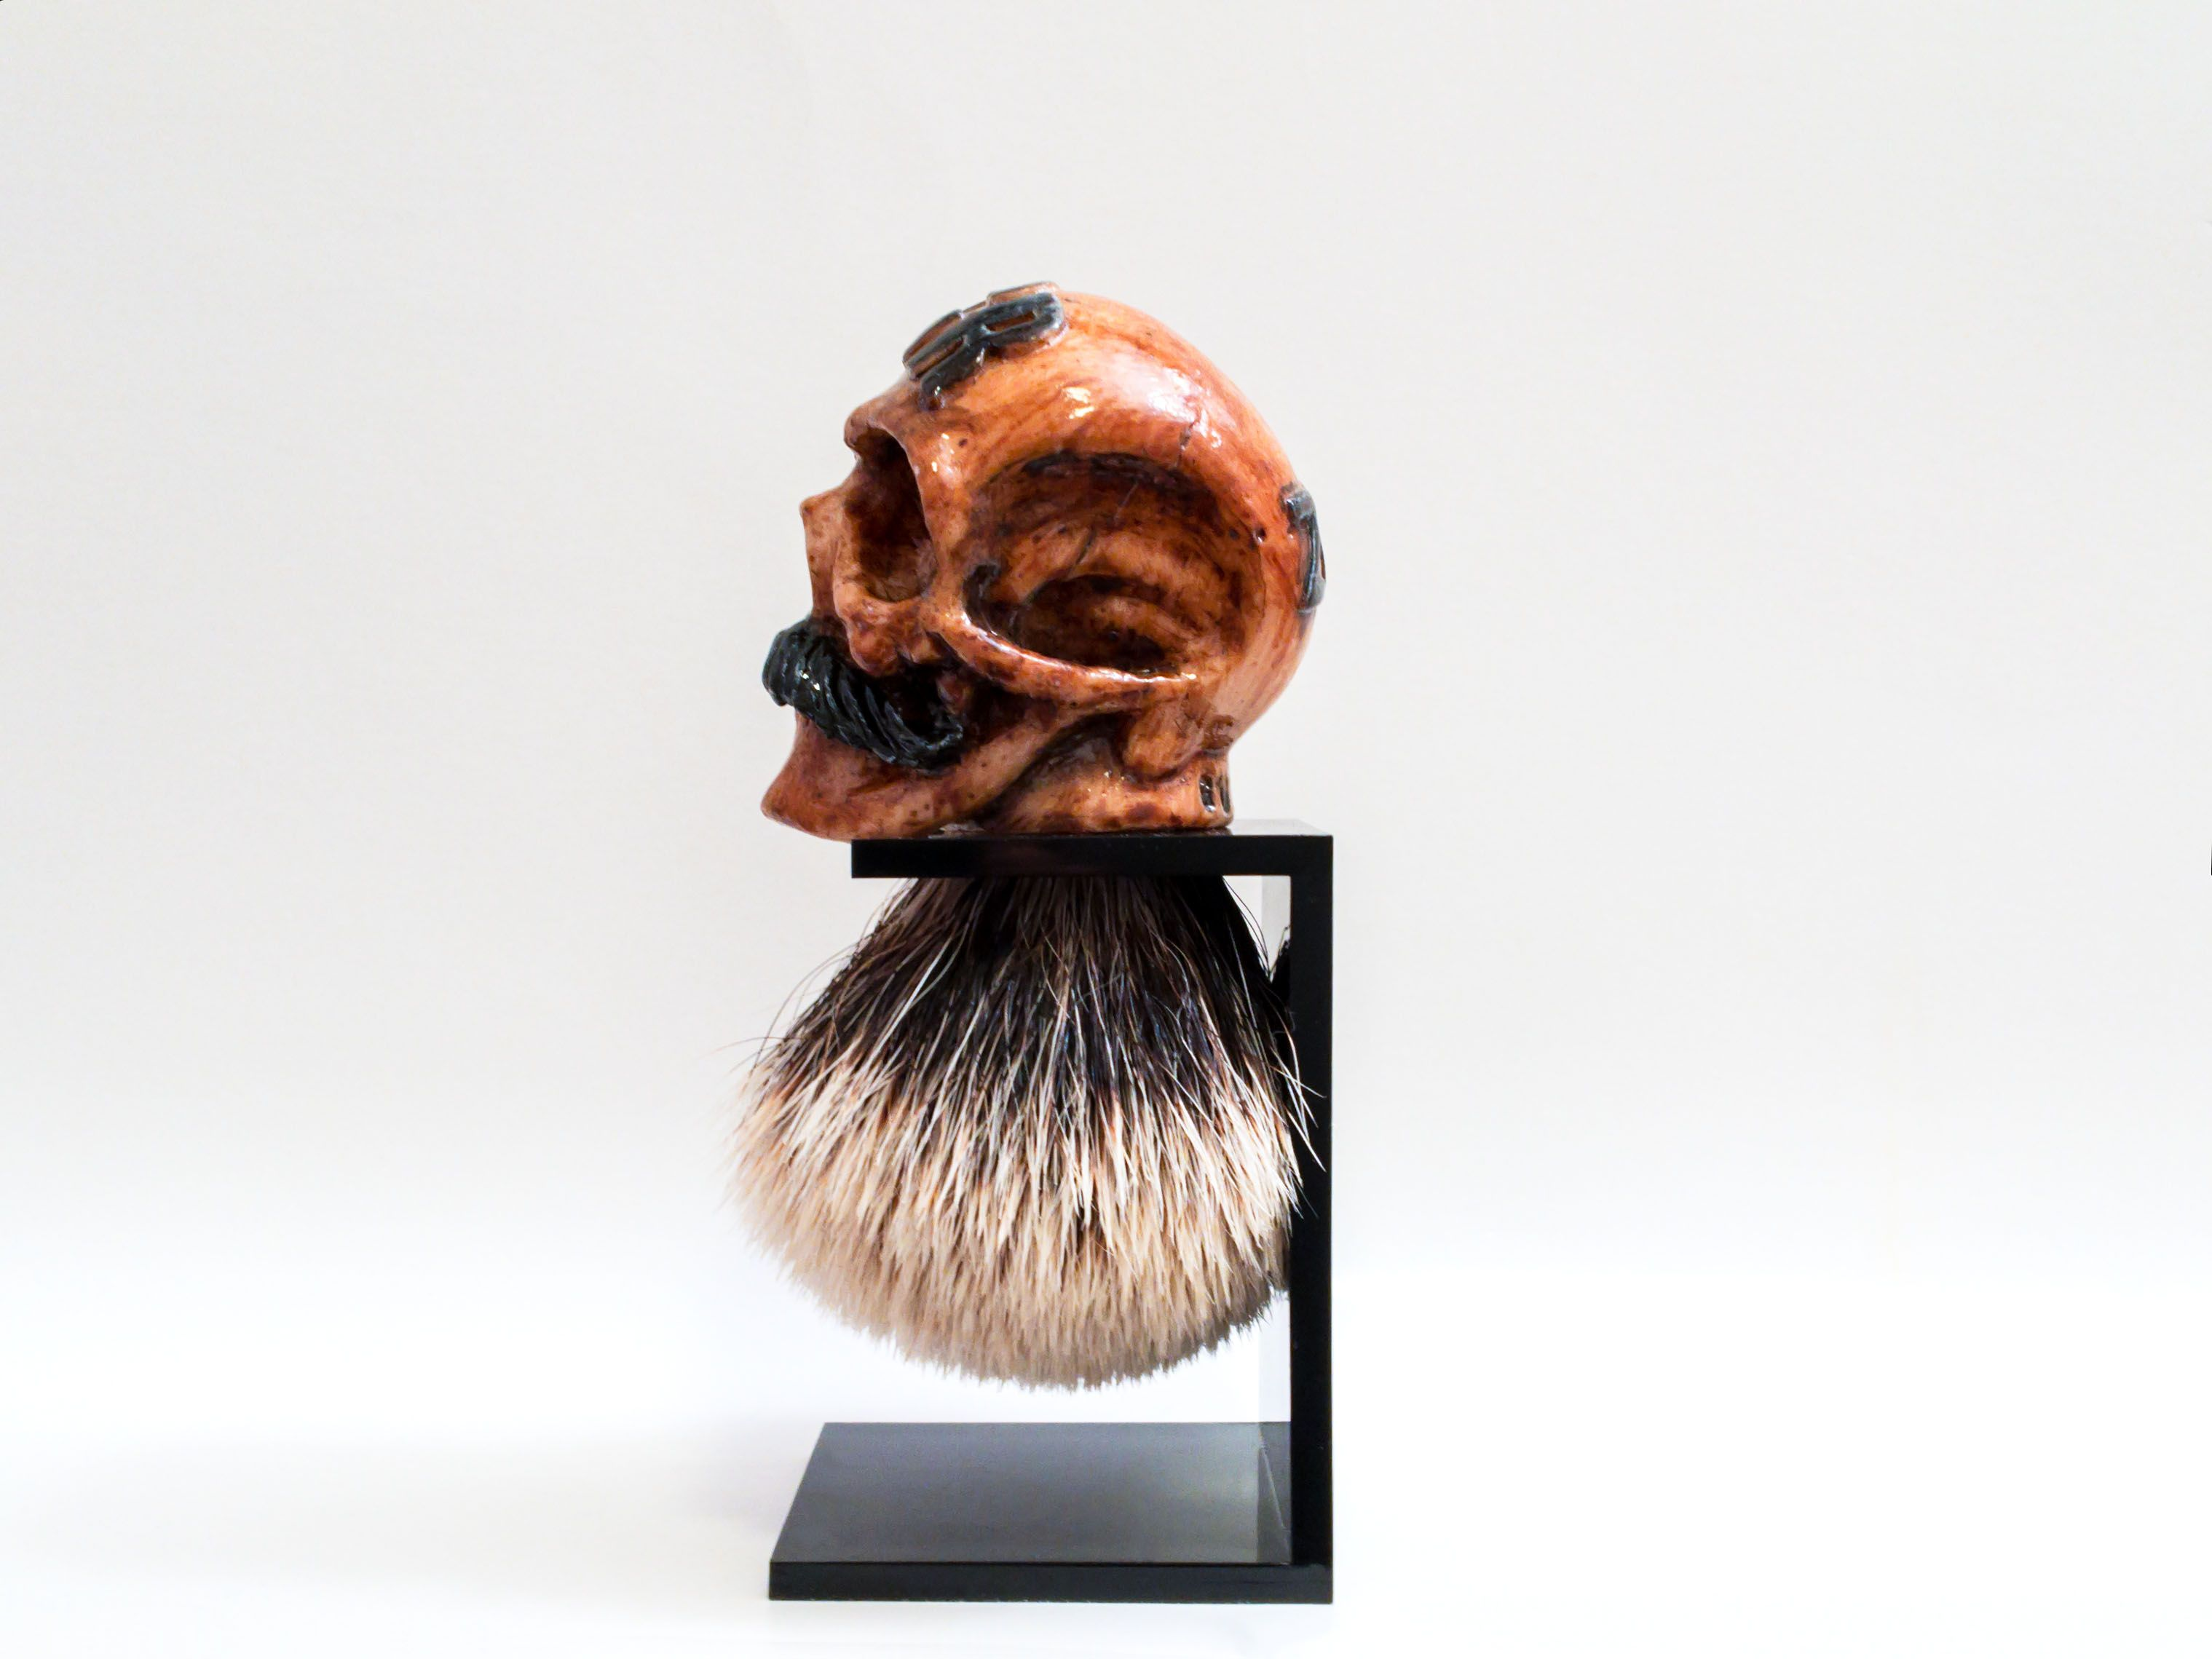 sotd february 26 2018 daily lather